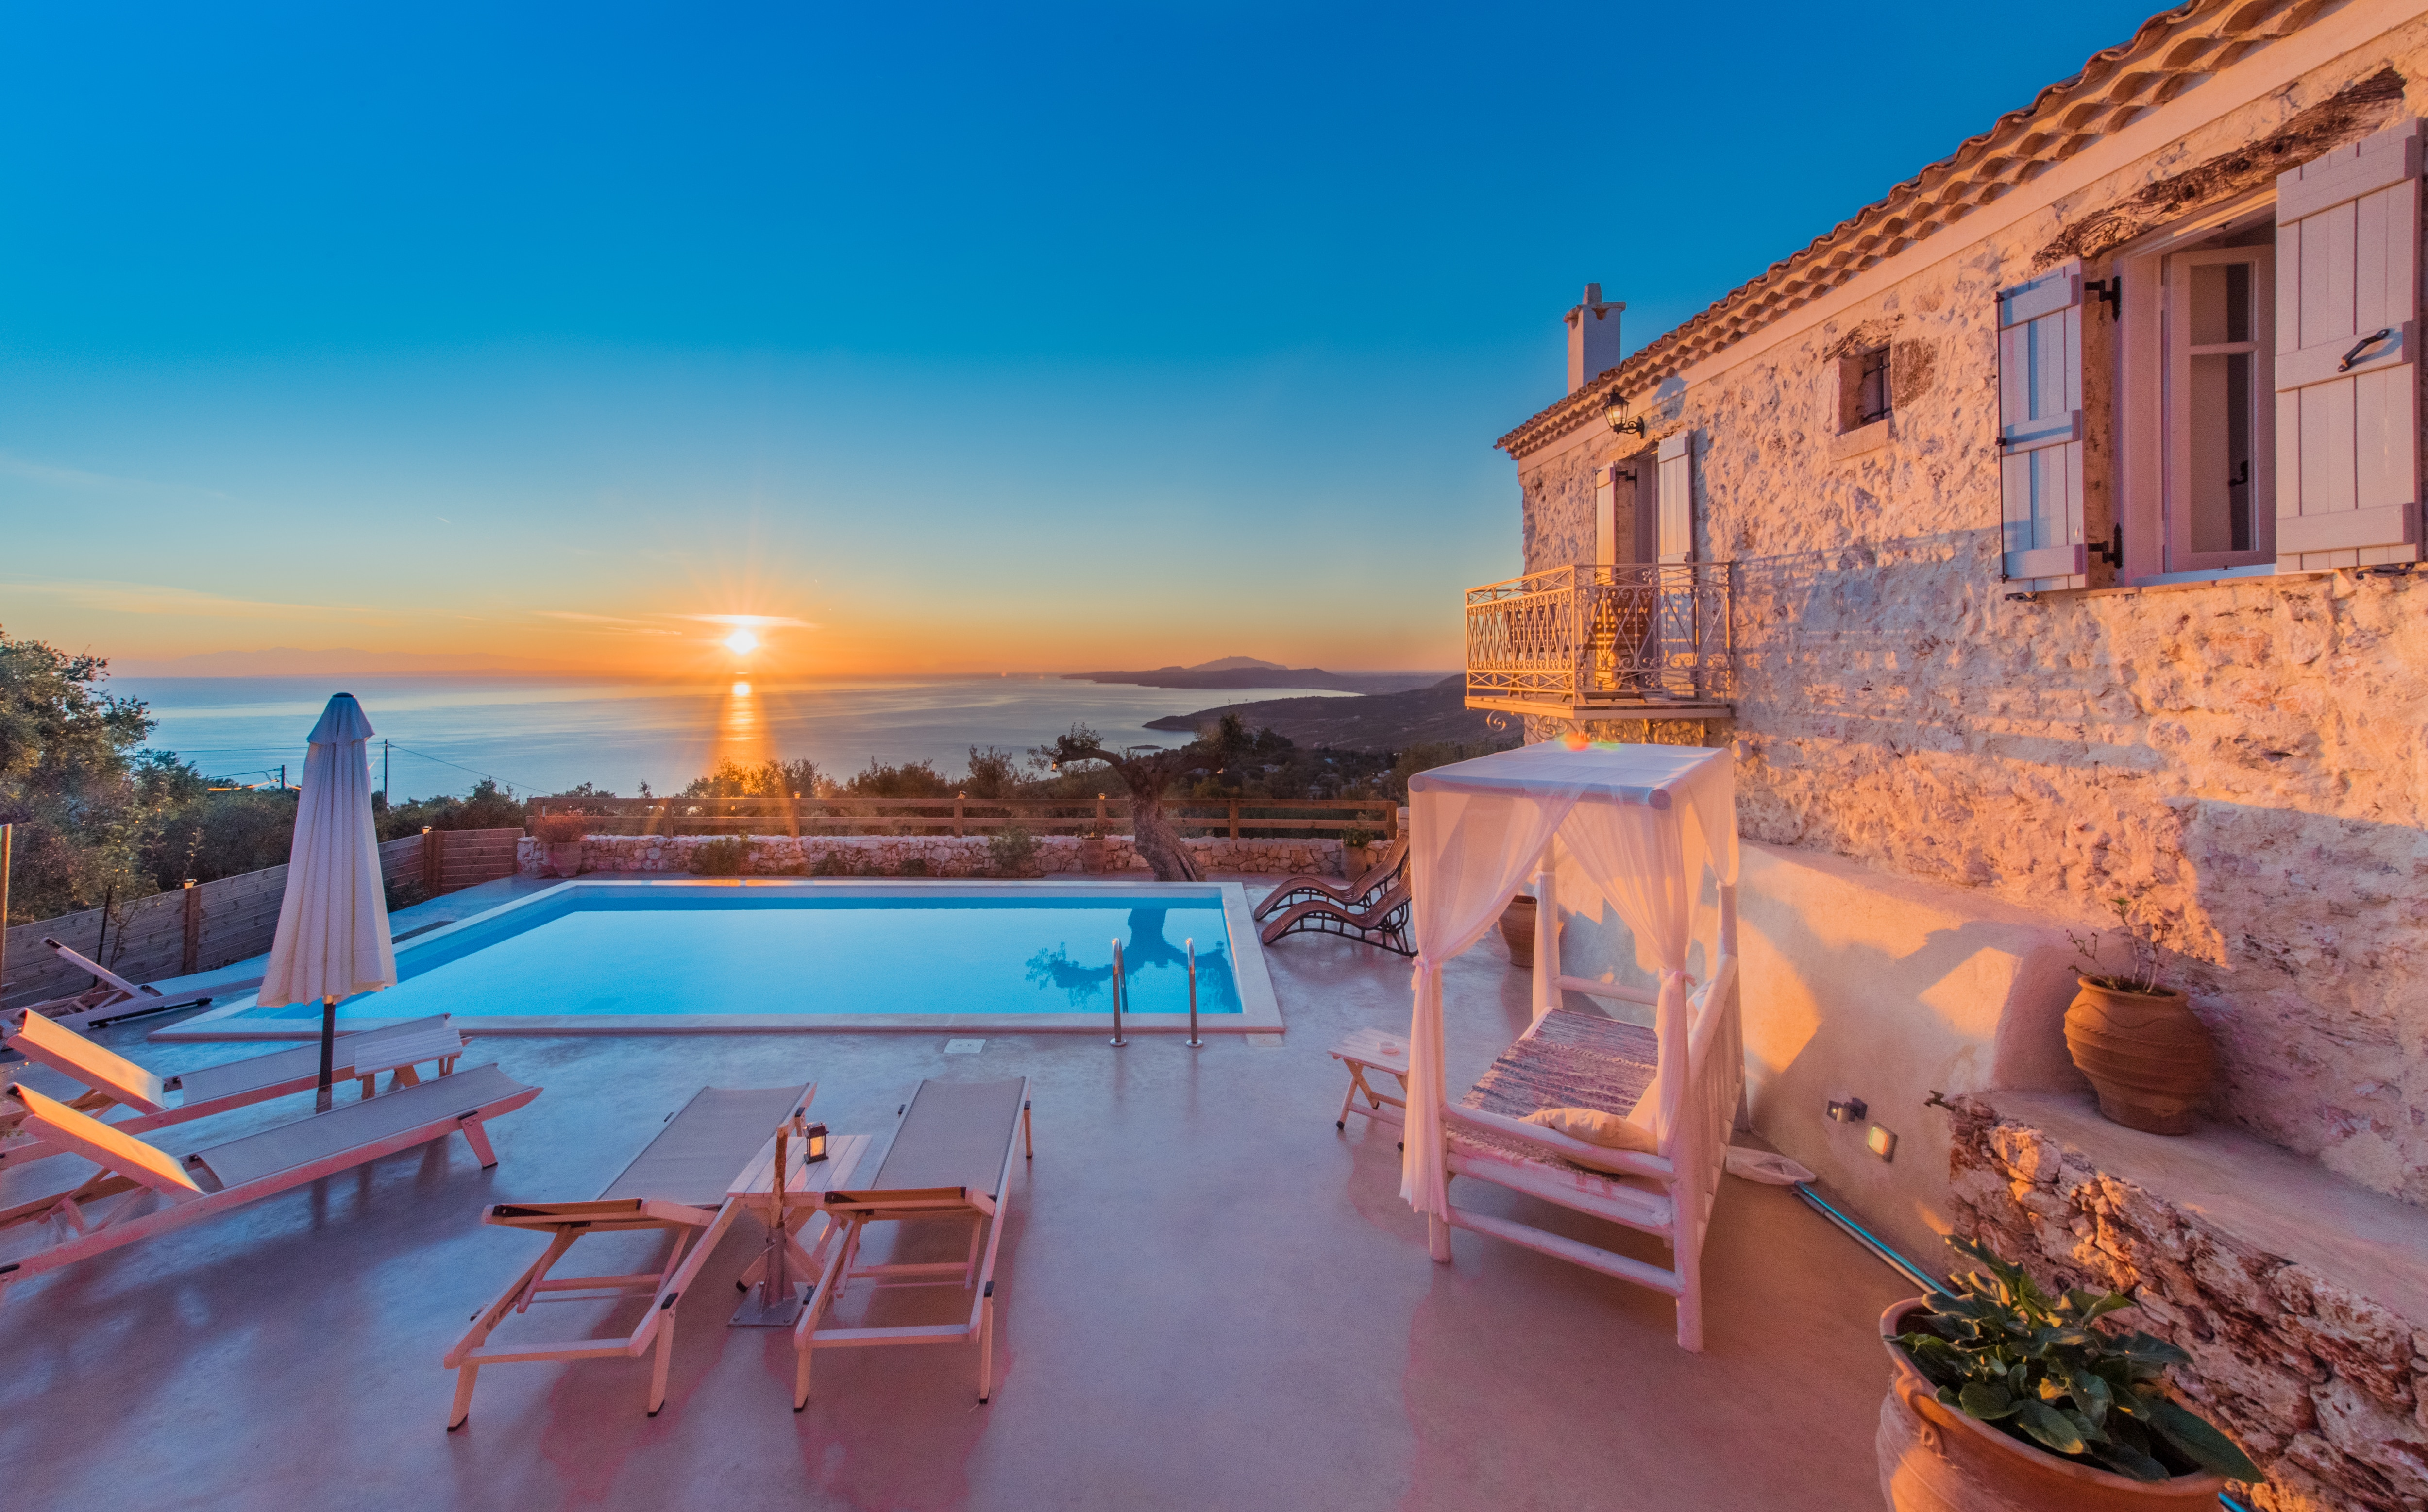 Property Image 1 - Traditional villa built in an idyllic landscape with private pool